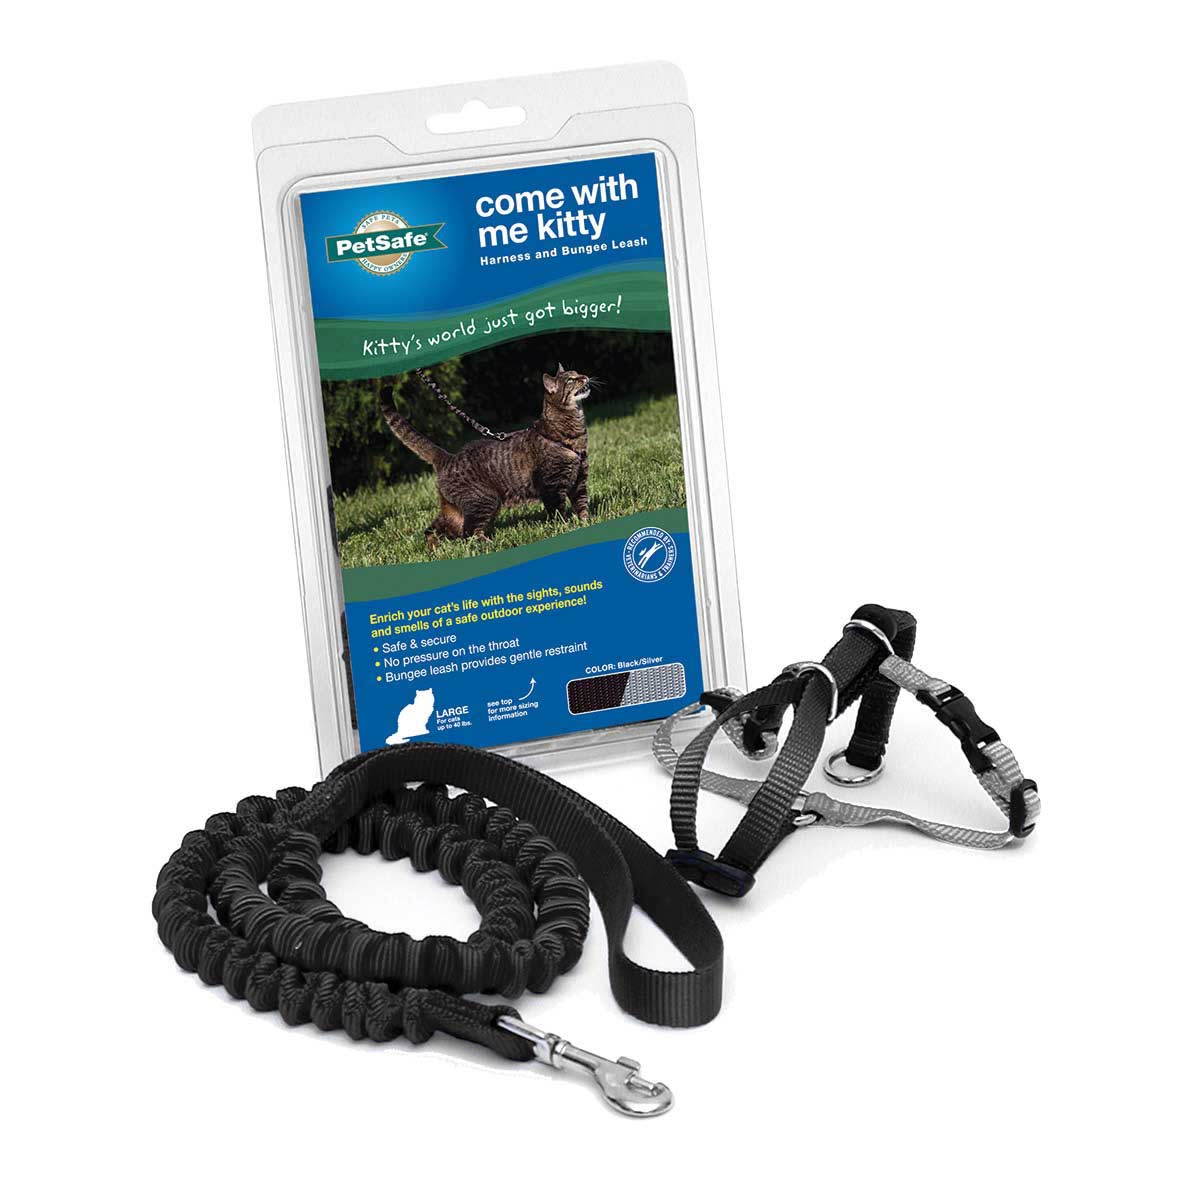 """PetSafe Come With Me Kitty Harness and Bungee Leash for Cats - Black 9"""" - 11"""""""